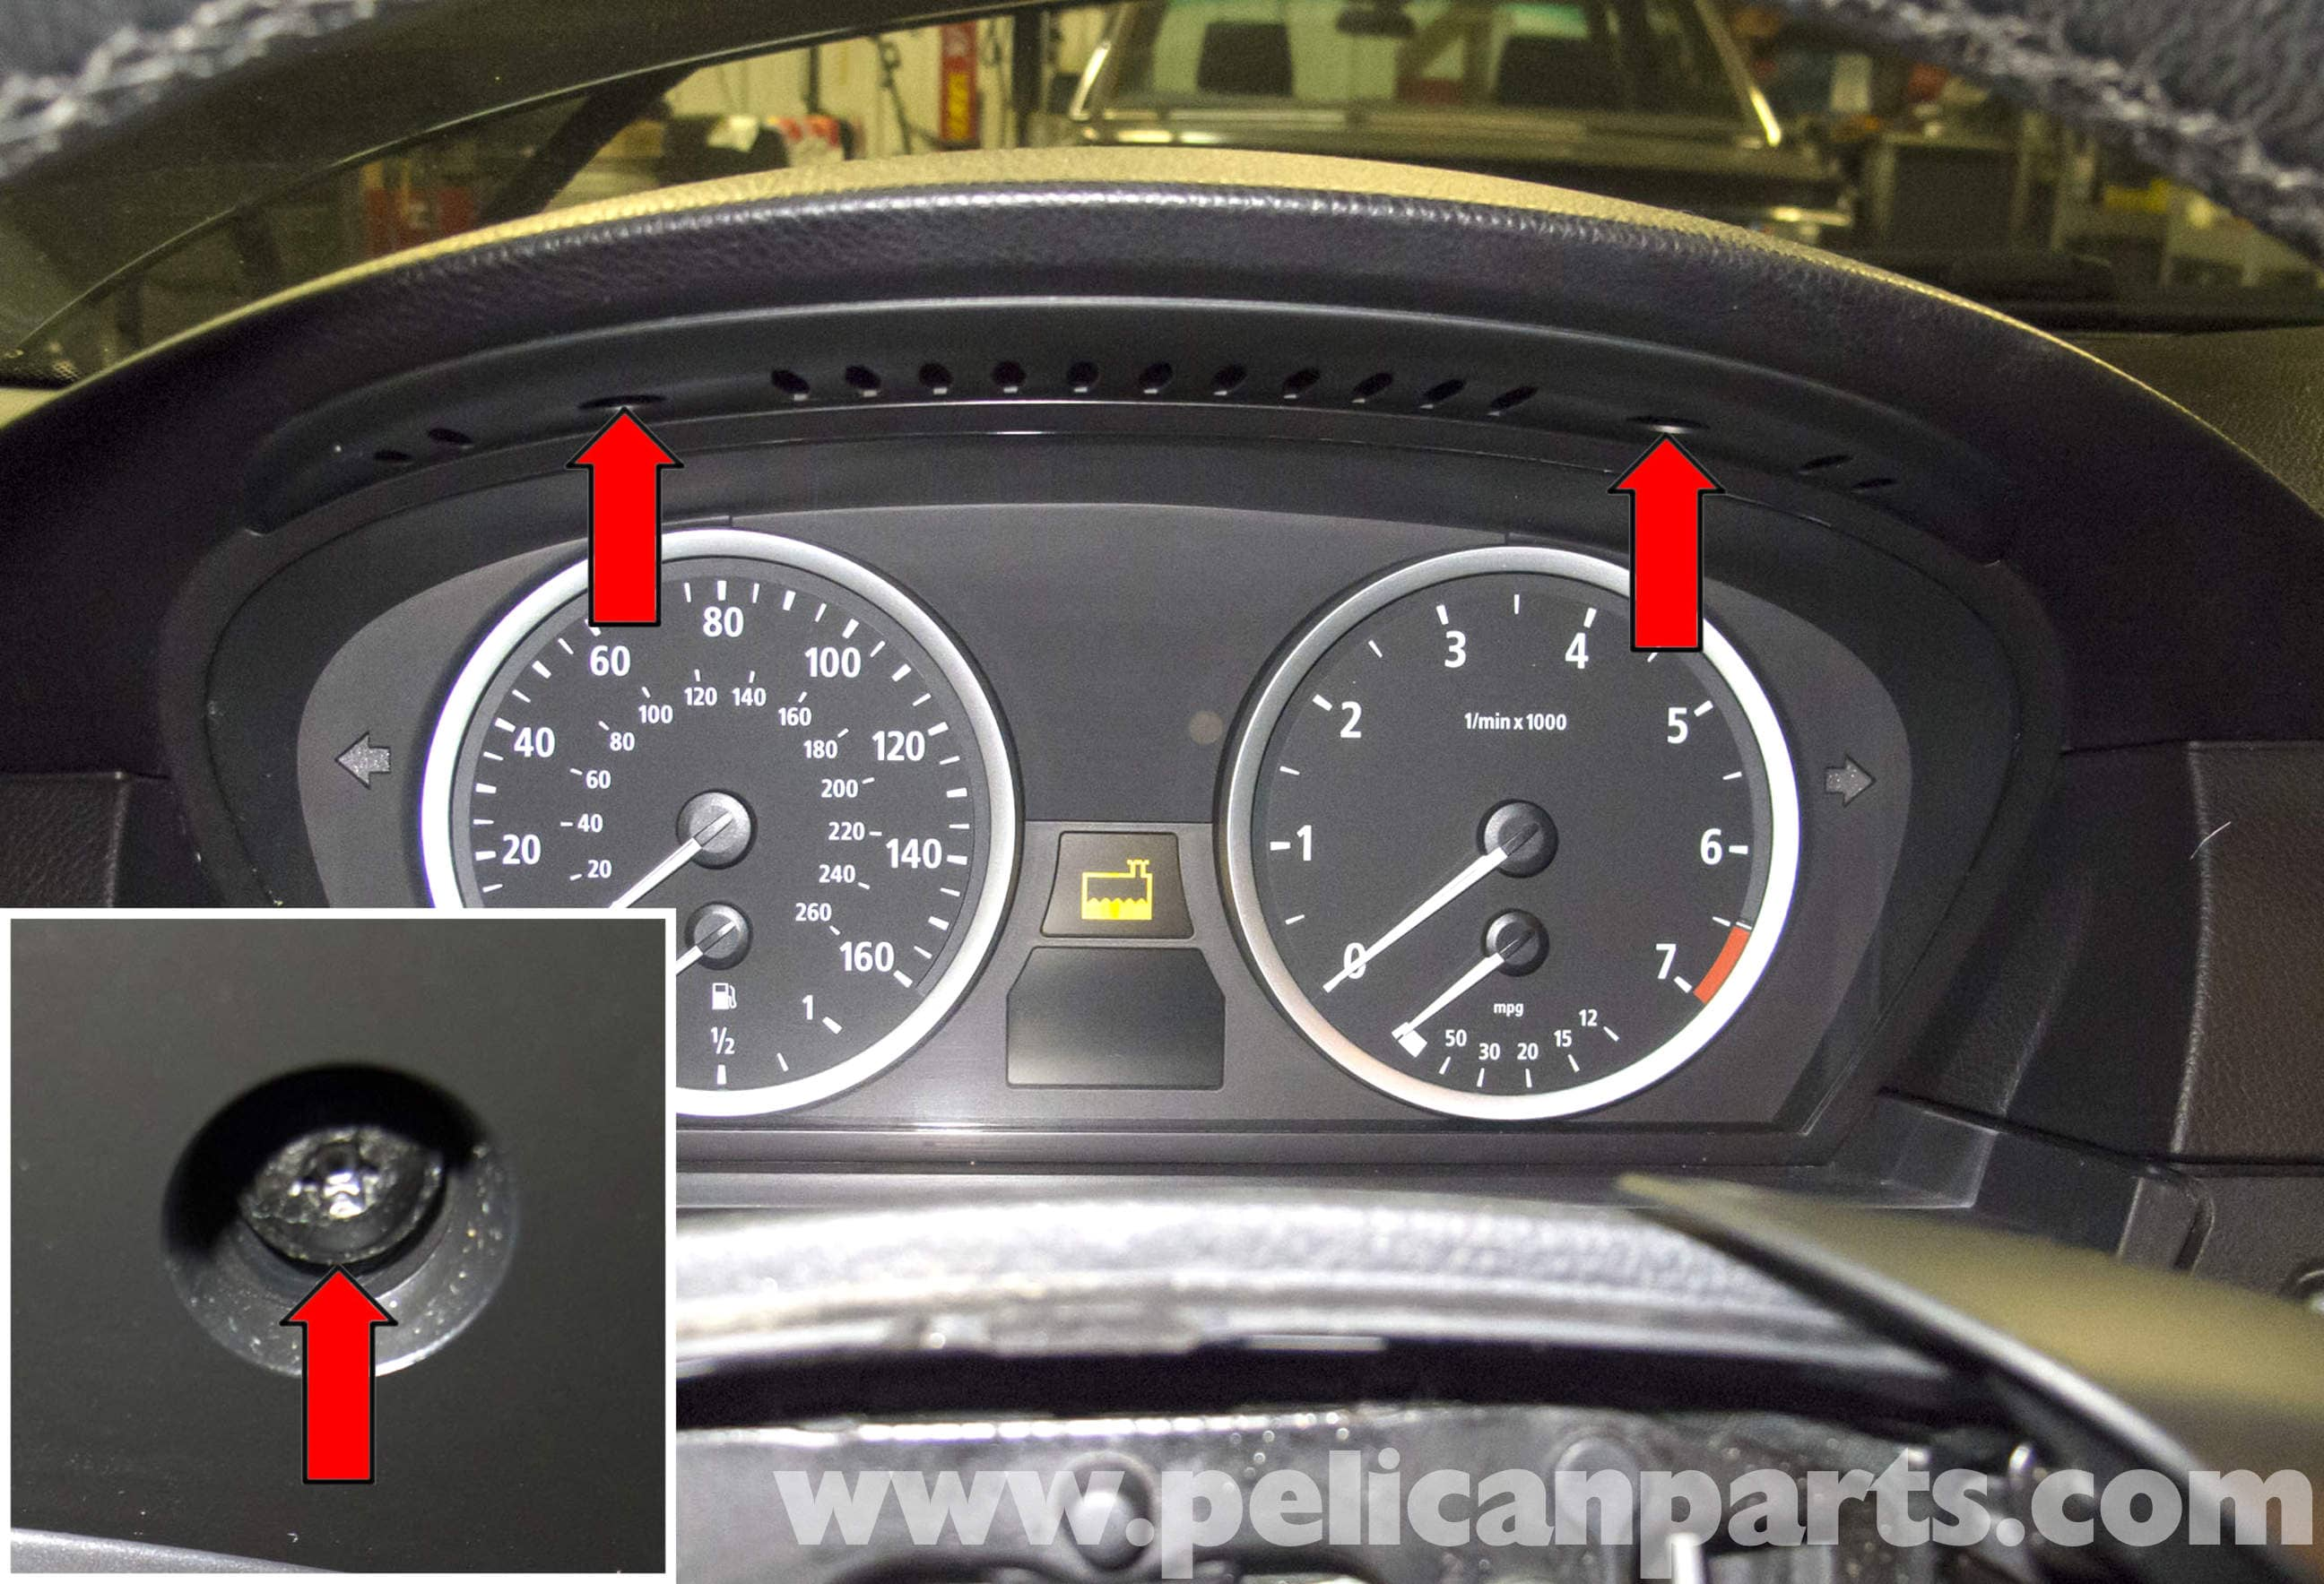 BMW E60 5-Series Instrument Cluster Replacement (2003-2010